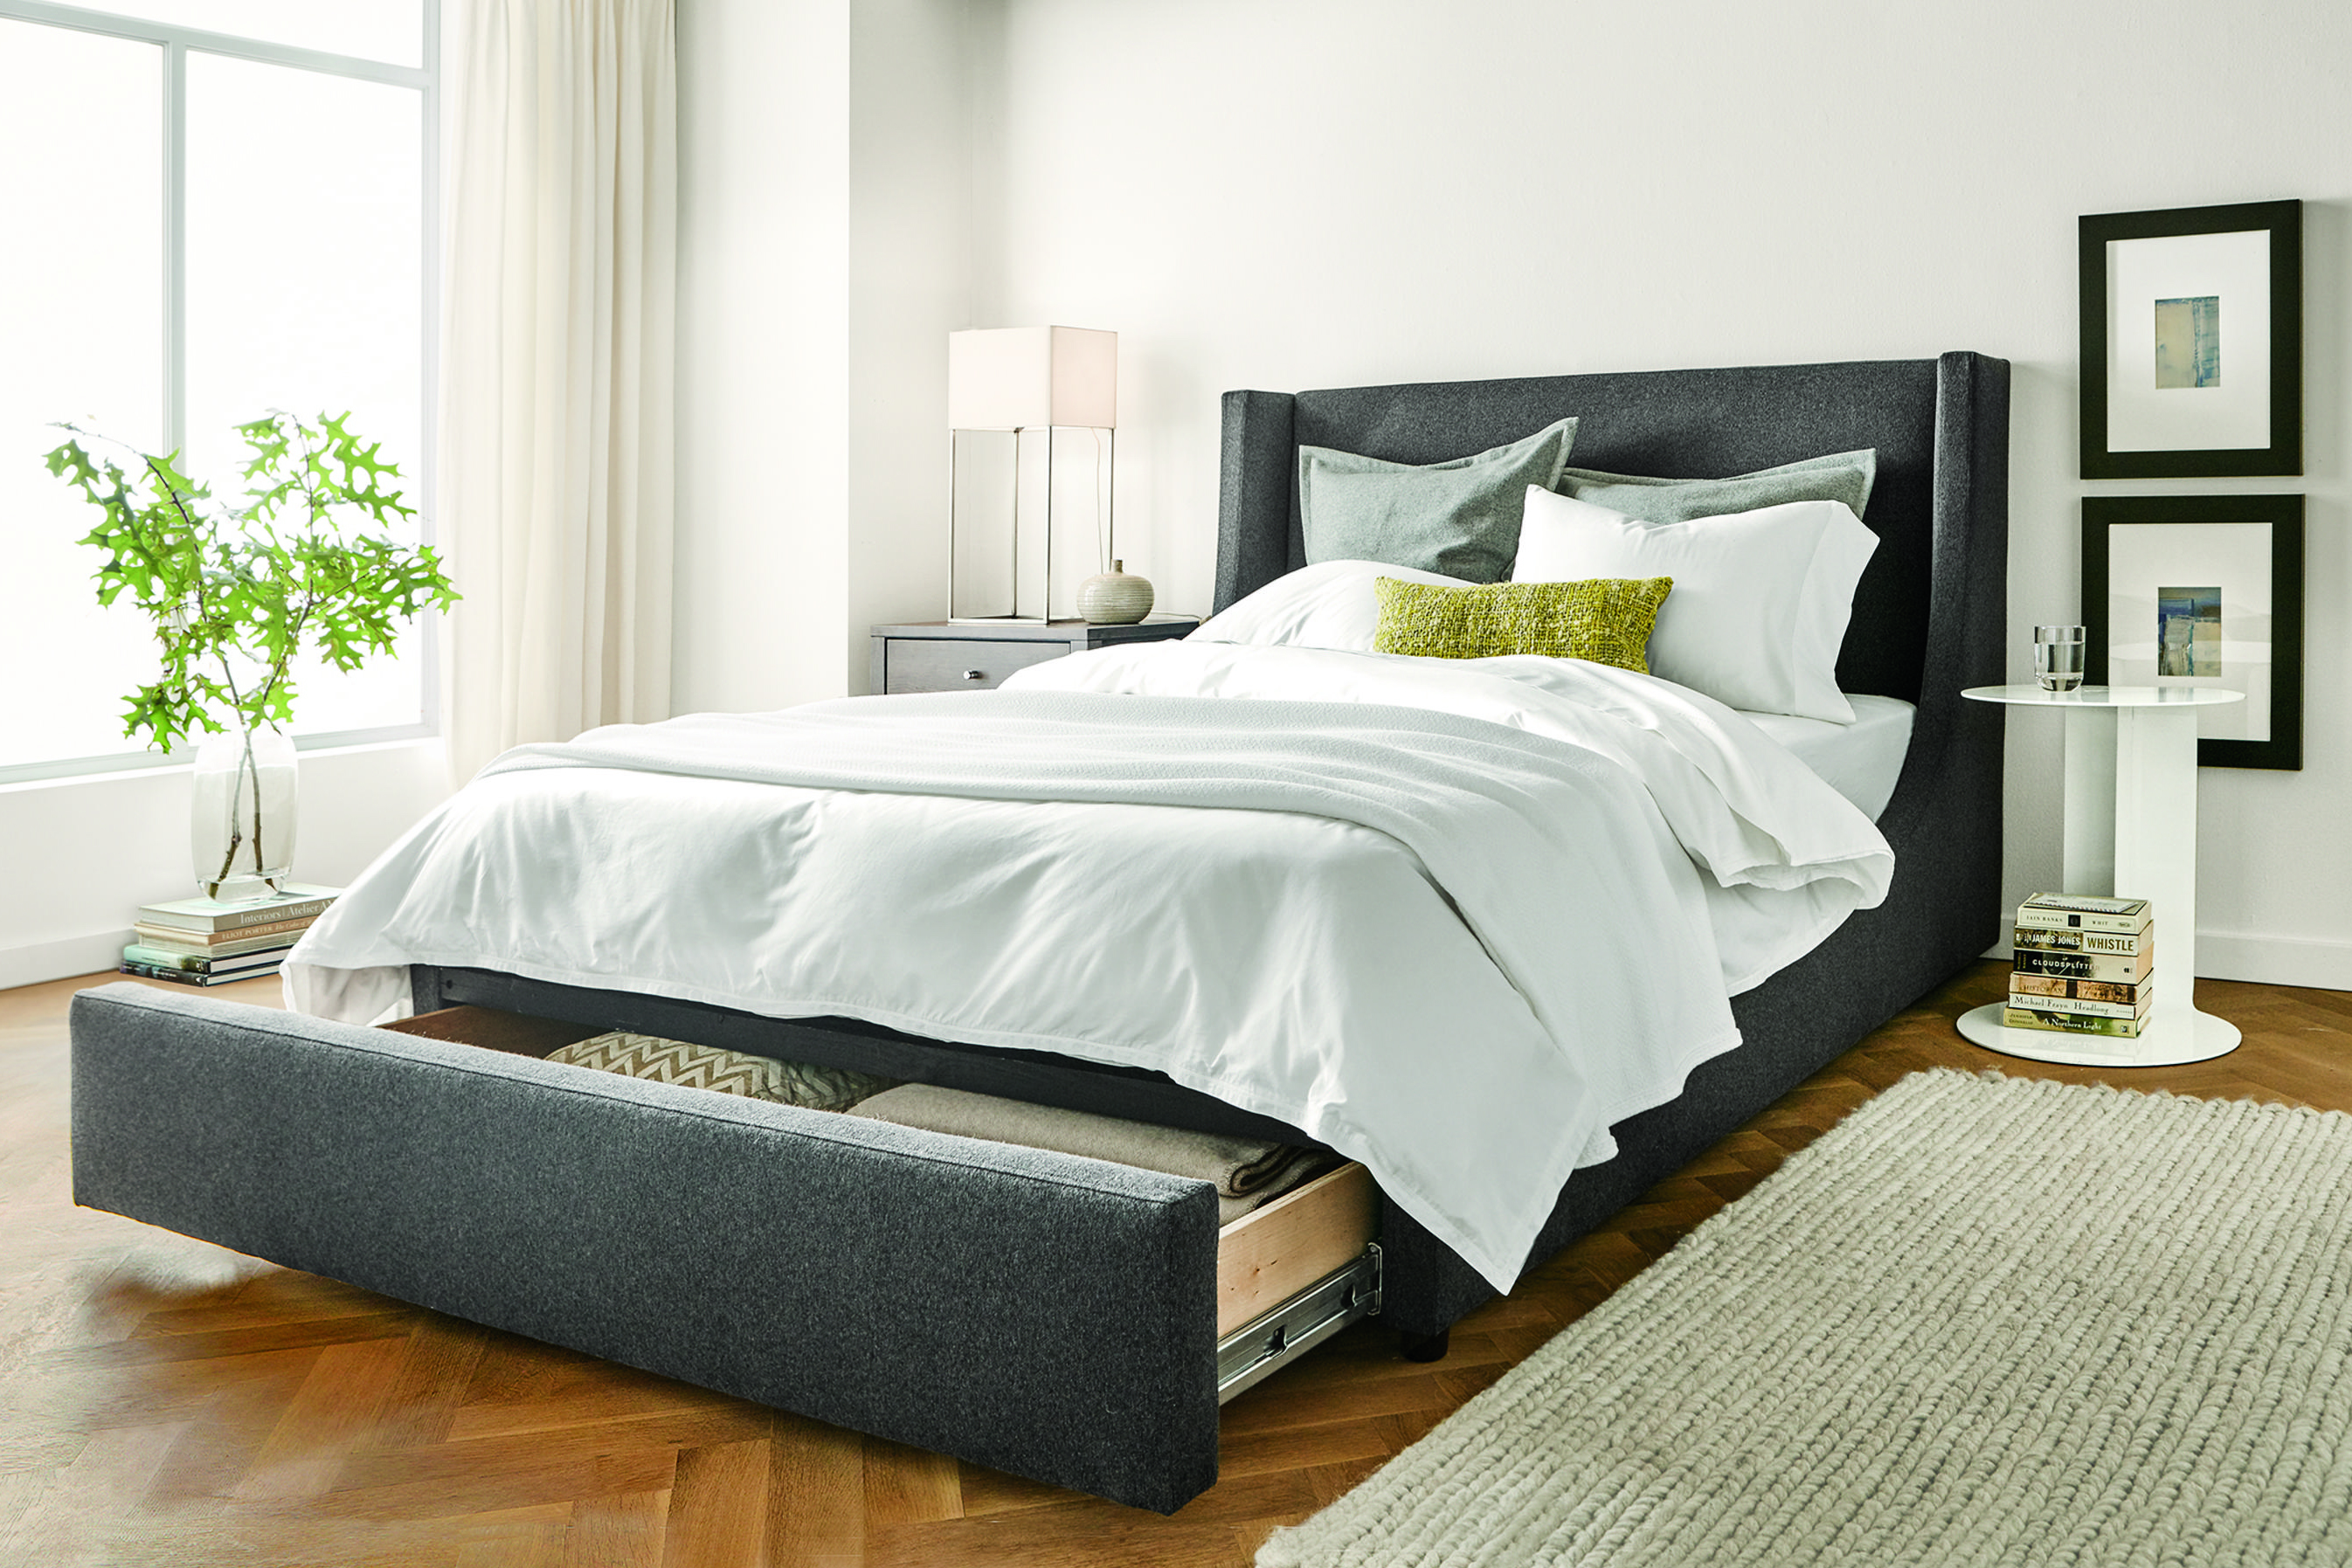 Bed with storage space (Photo credit: courtesy of room & board) OQRNZDH